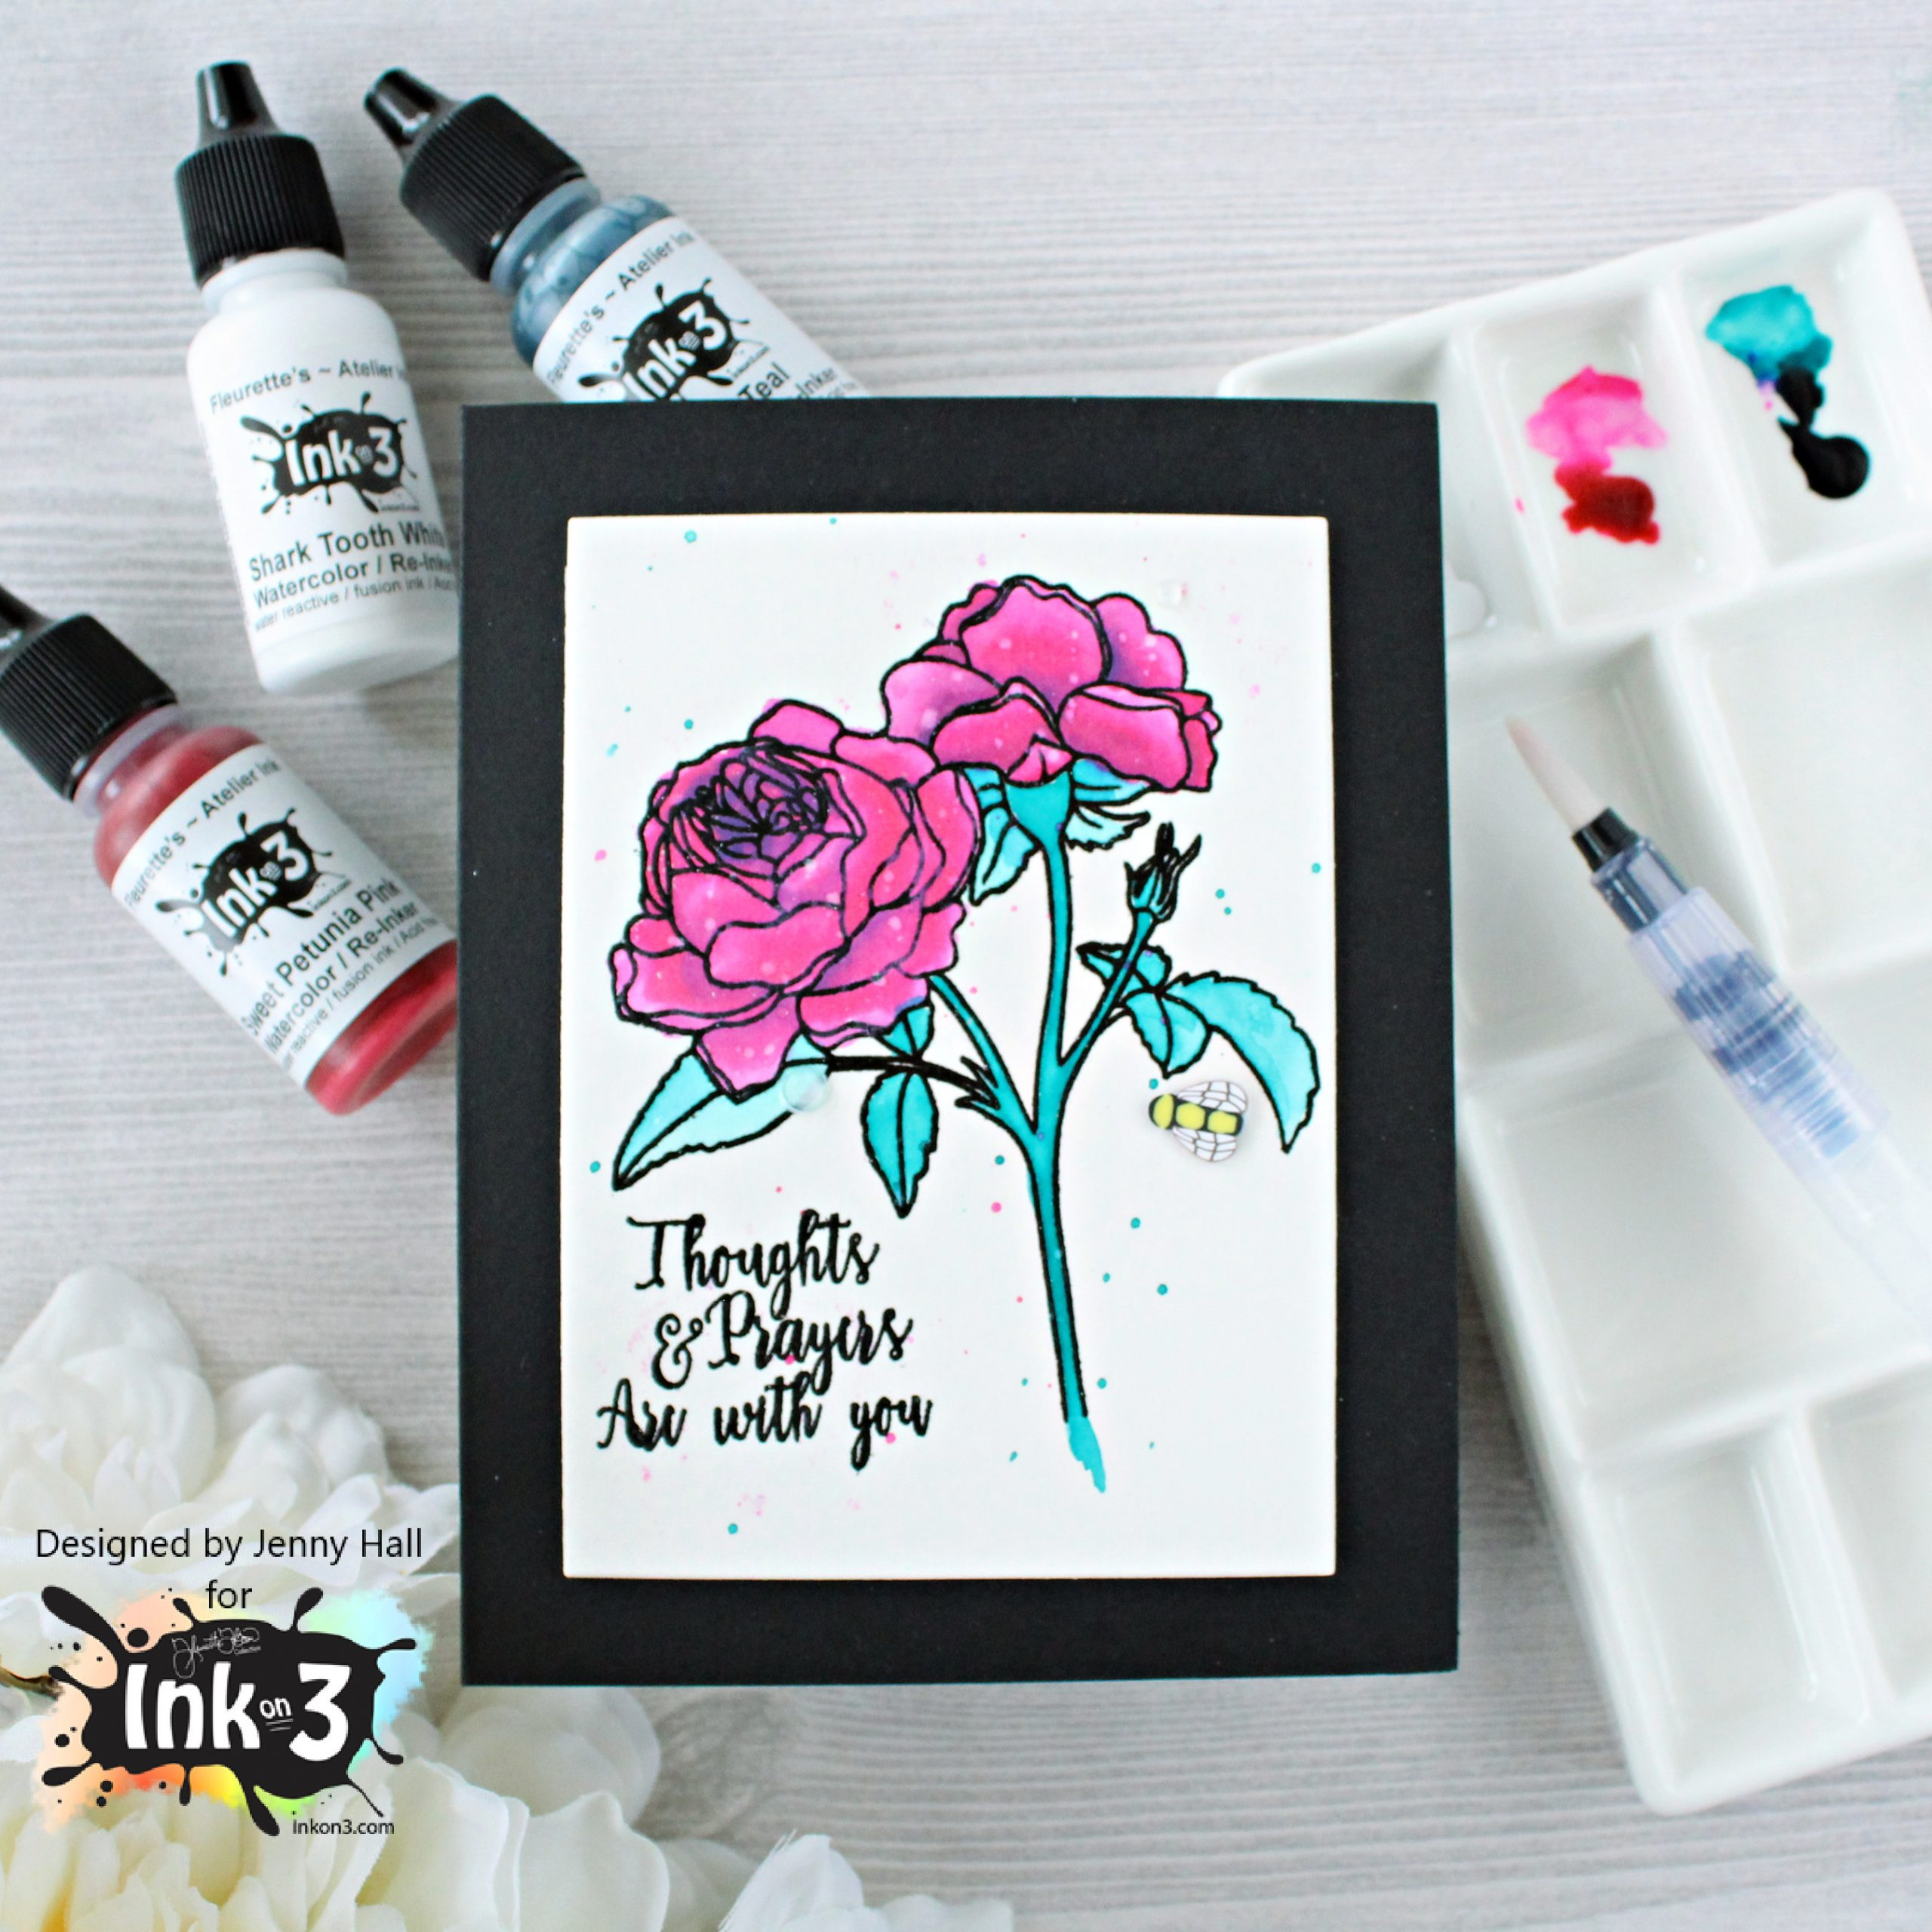 New Inks coming from Ink on 3! at www.jennyhalldesign.com #jennyhall #jennyhalldesign #jennystampsup #freecardmakingtutorial #freeartlesson #youtuber #crafty #papercrafter #stamping #cardmaking #greetingcard #artsandcrafts #christiancrafts #craftsforkids #cardmakingtechnique #atelierinks #inkon3 #newinkcolors #trinityteal #sweetpetuniapink #sharktoothwhite #rosesinbloomstampset